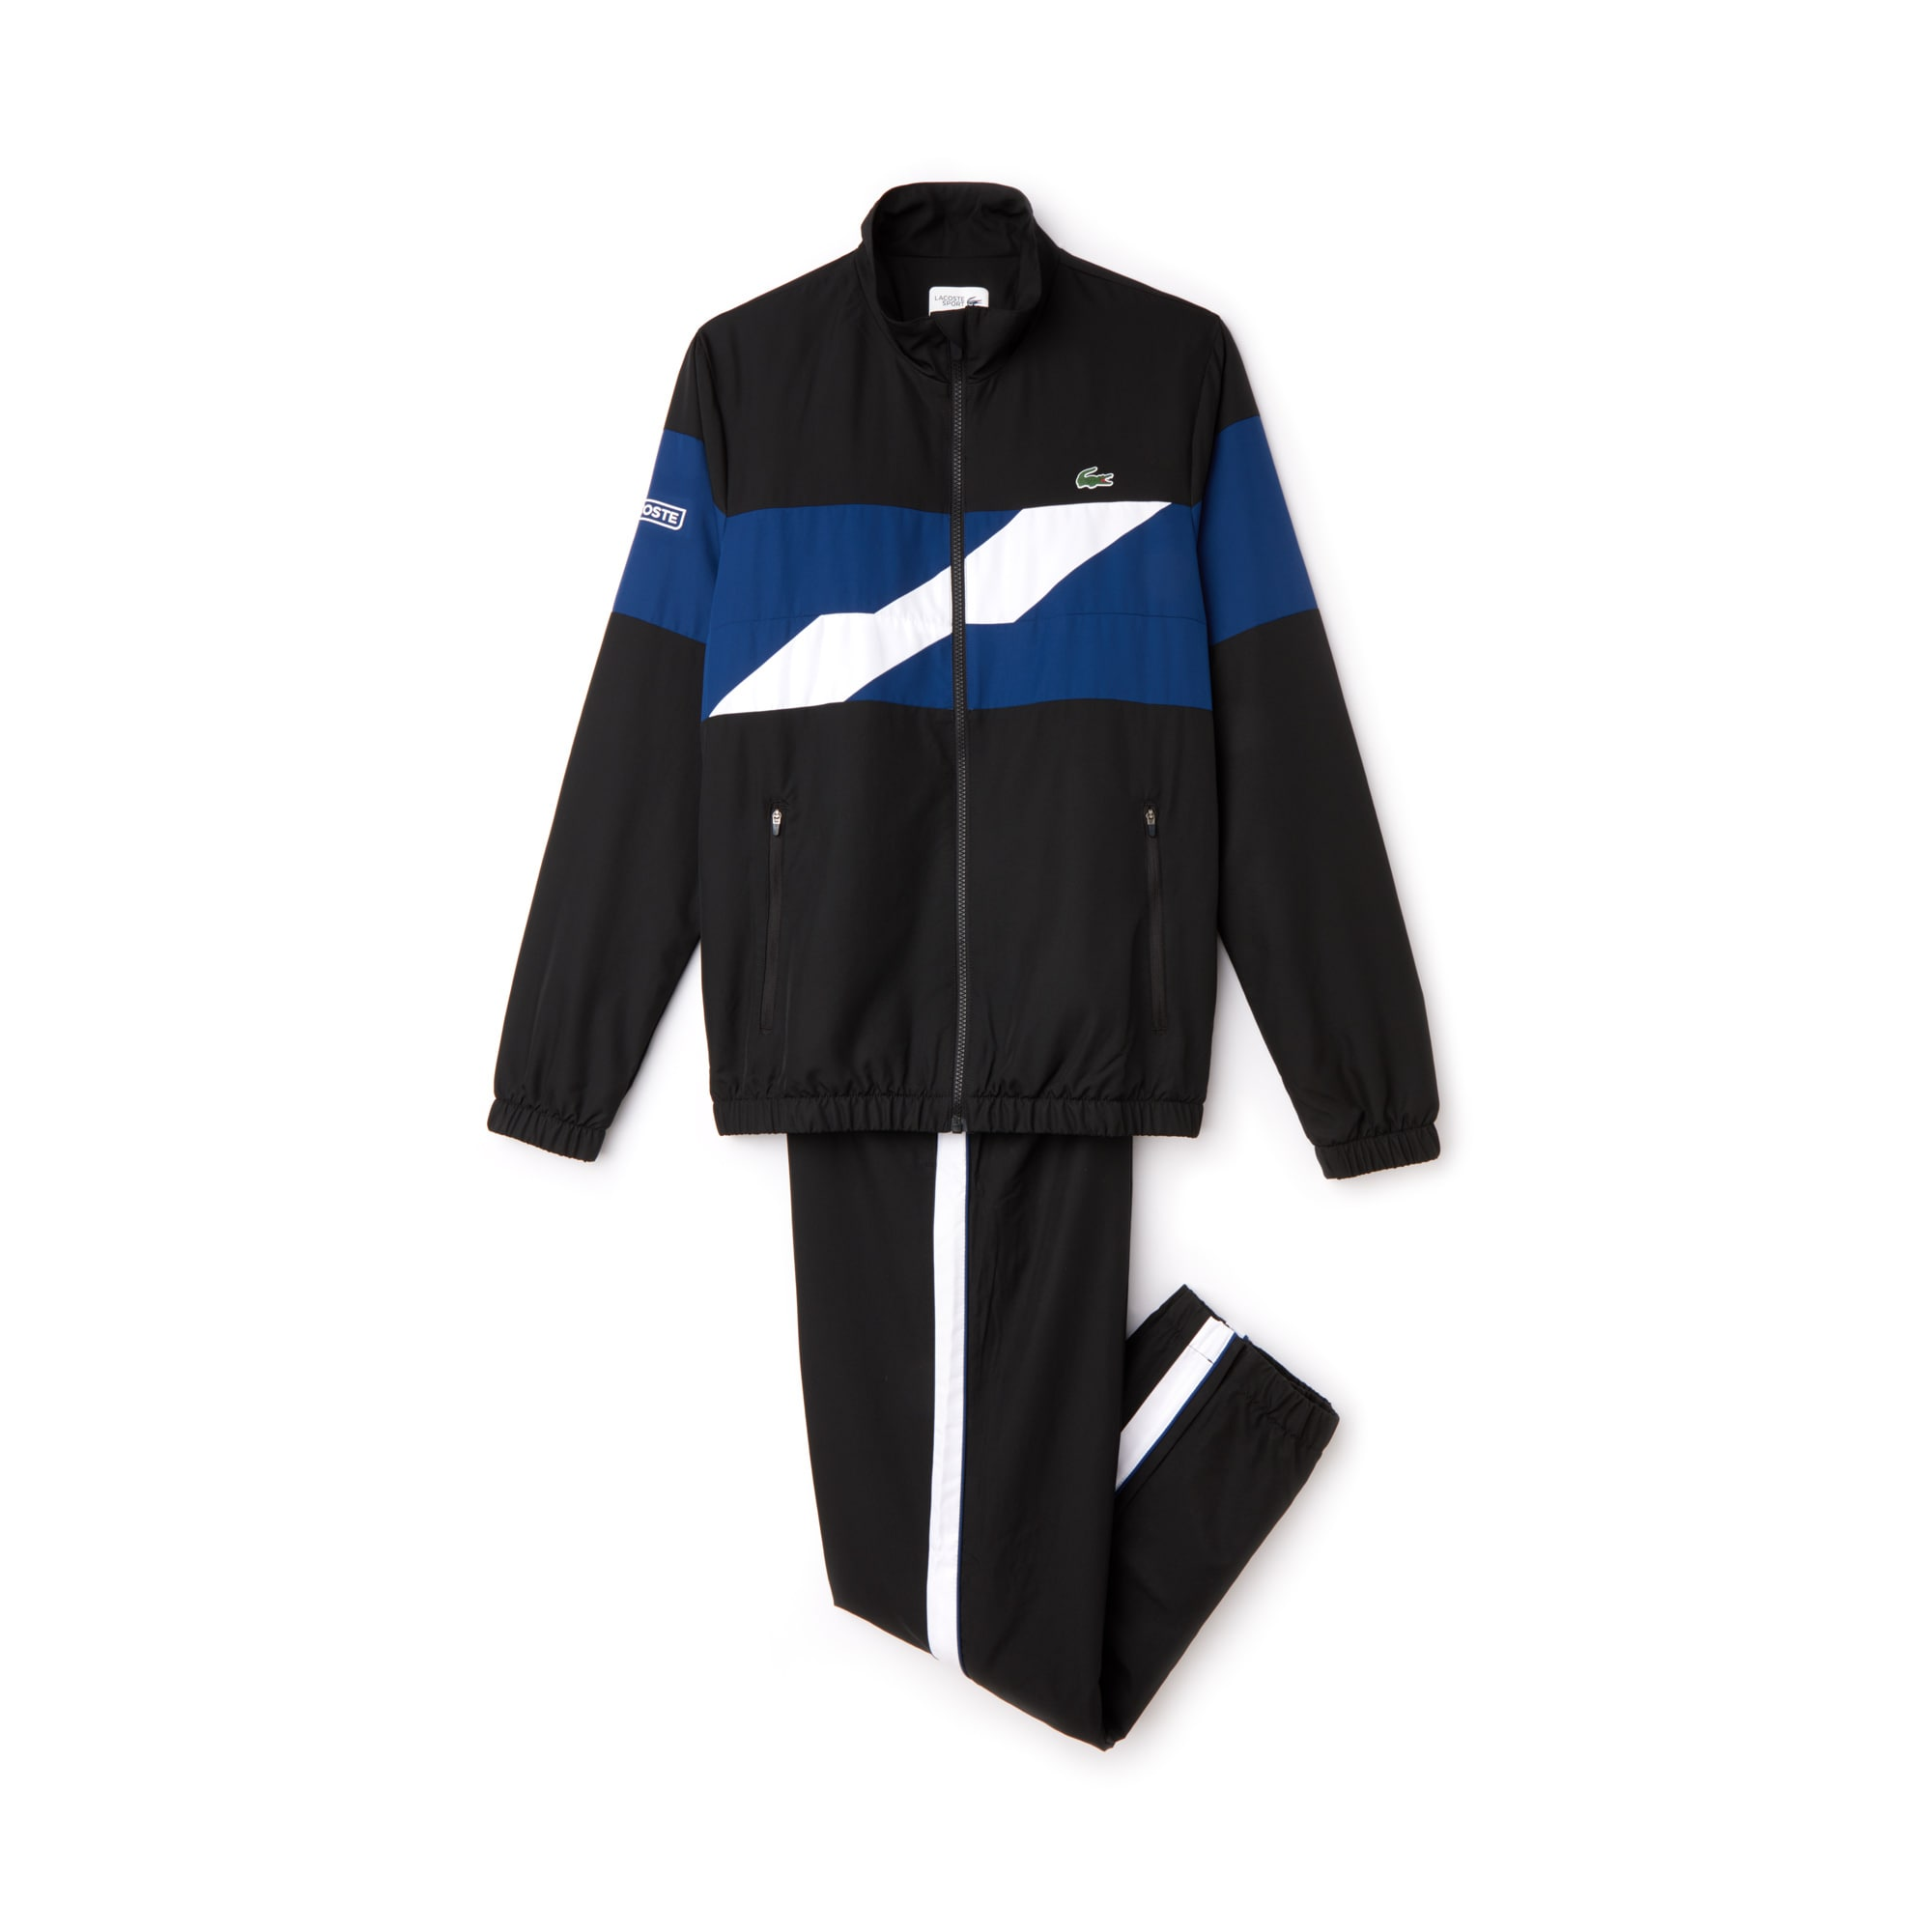 Men's Lacoste SPORT Colored Bands Taffeta Tennis Tracksuit